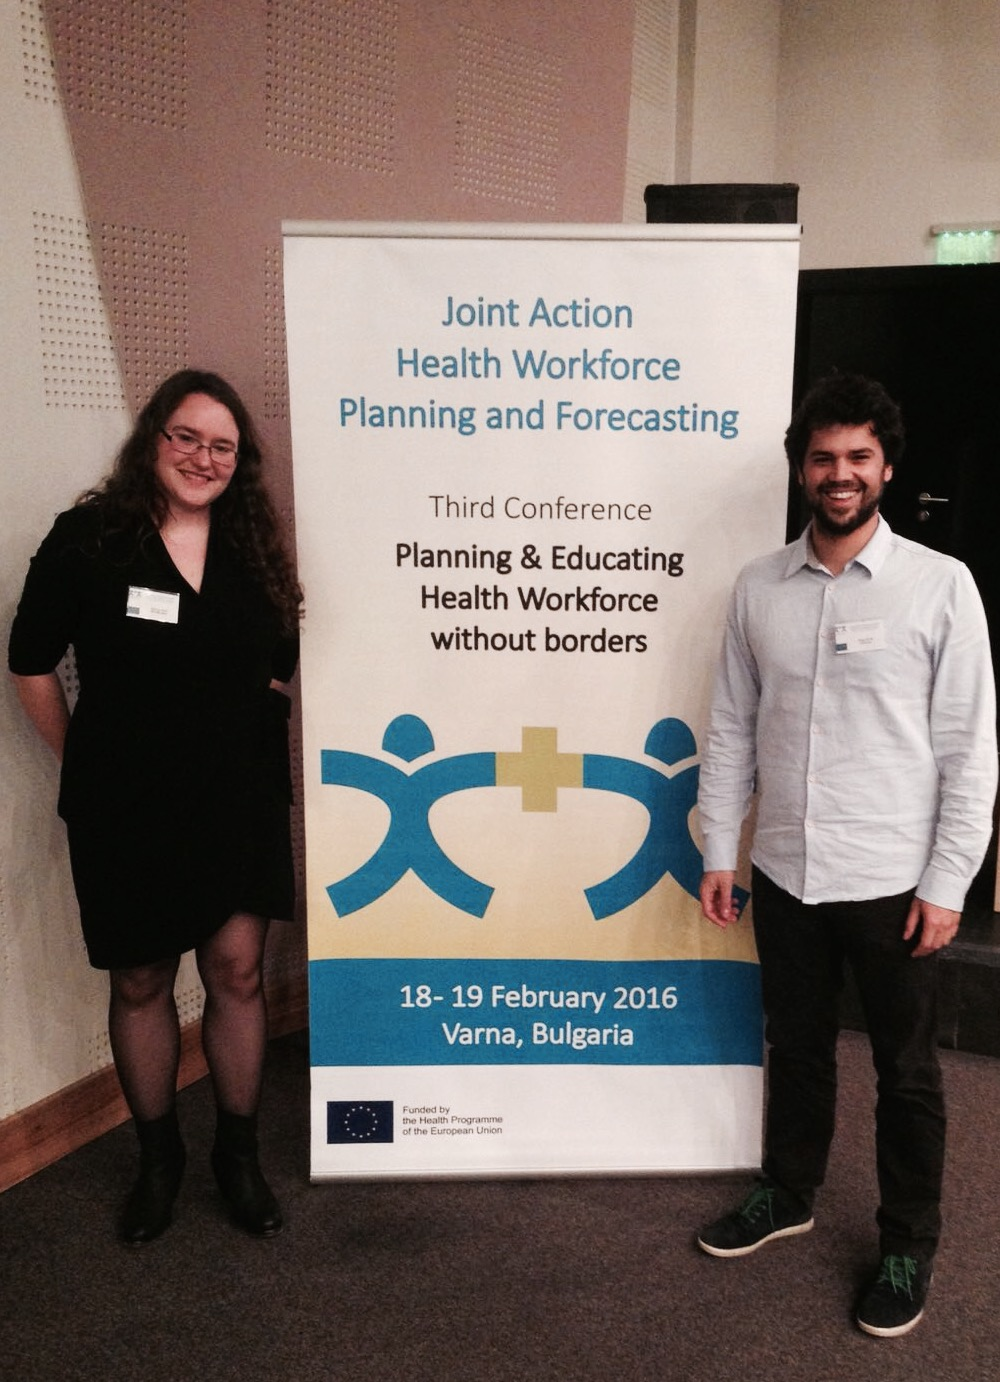 IFMSA at the Third Conference of the Joint Action Health Workforce Planning and Forecasting